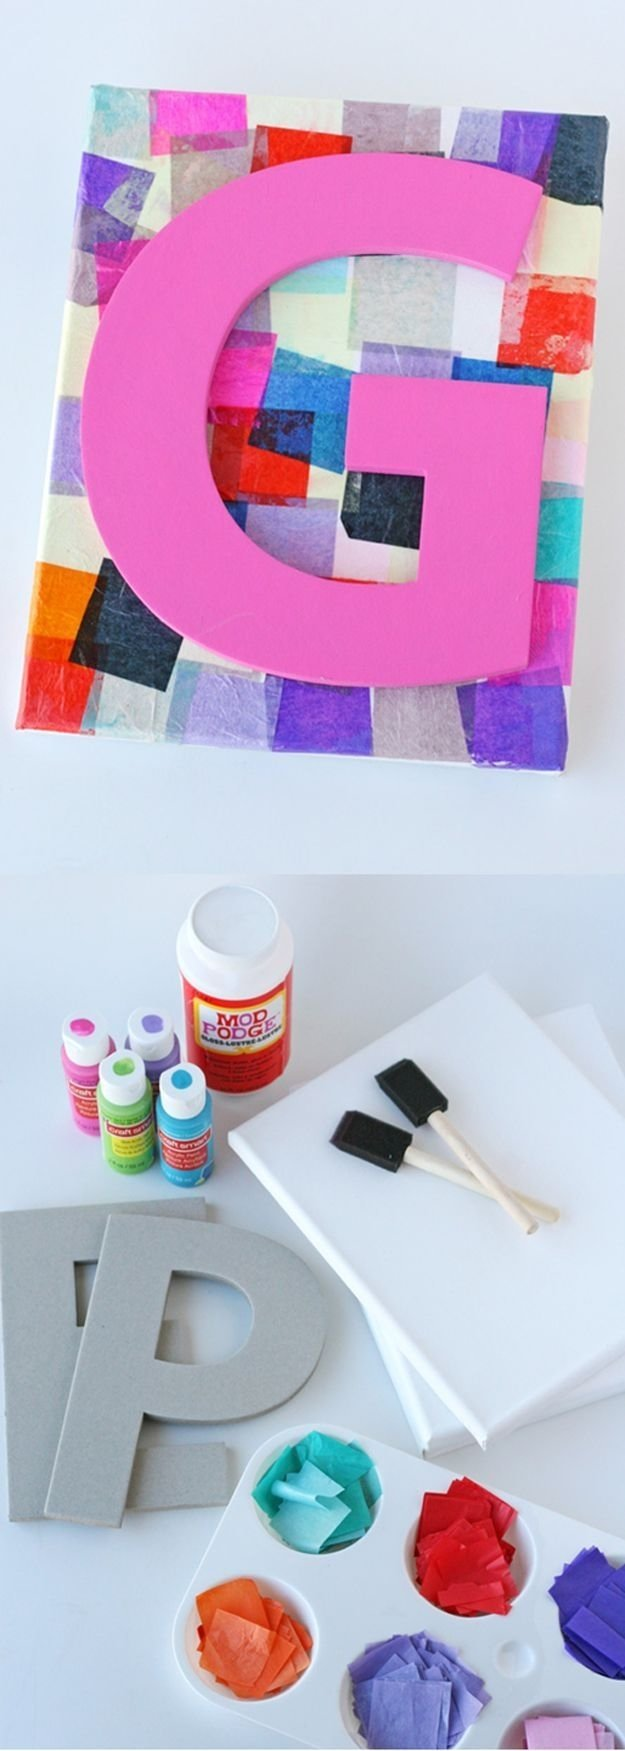 10 Nice Cute Arts And Crafts Ideas etikaprojects do it yourself project 1